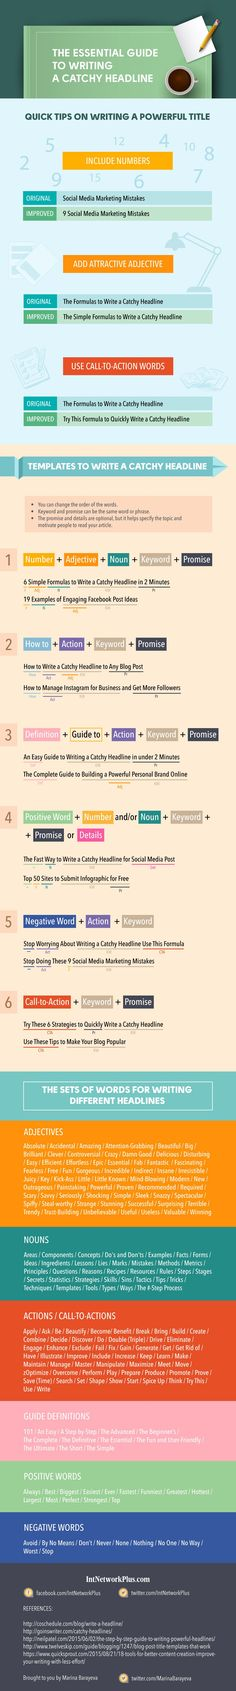 How to Write Better Headlines [Infographic], via @HubSpot